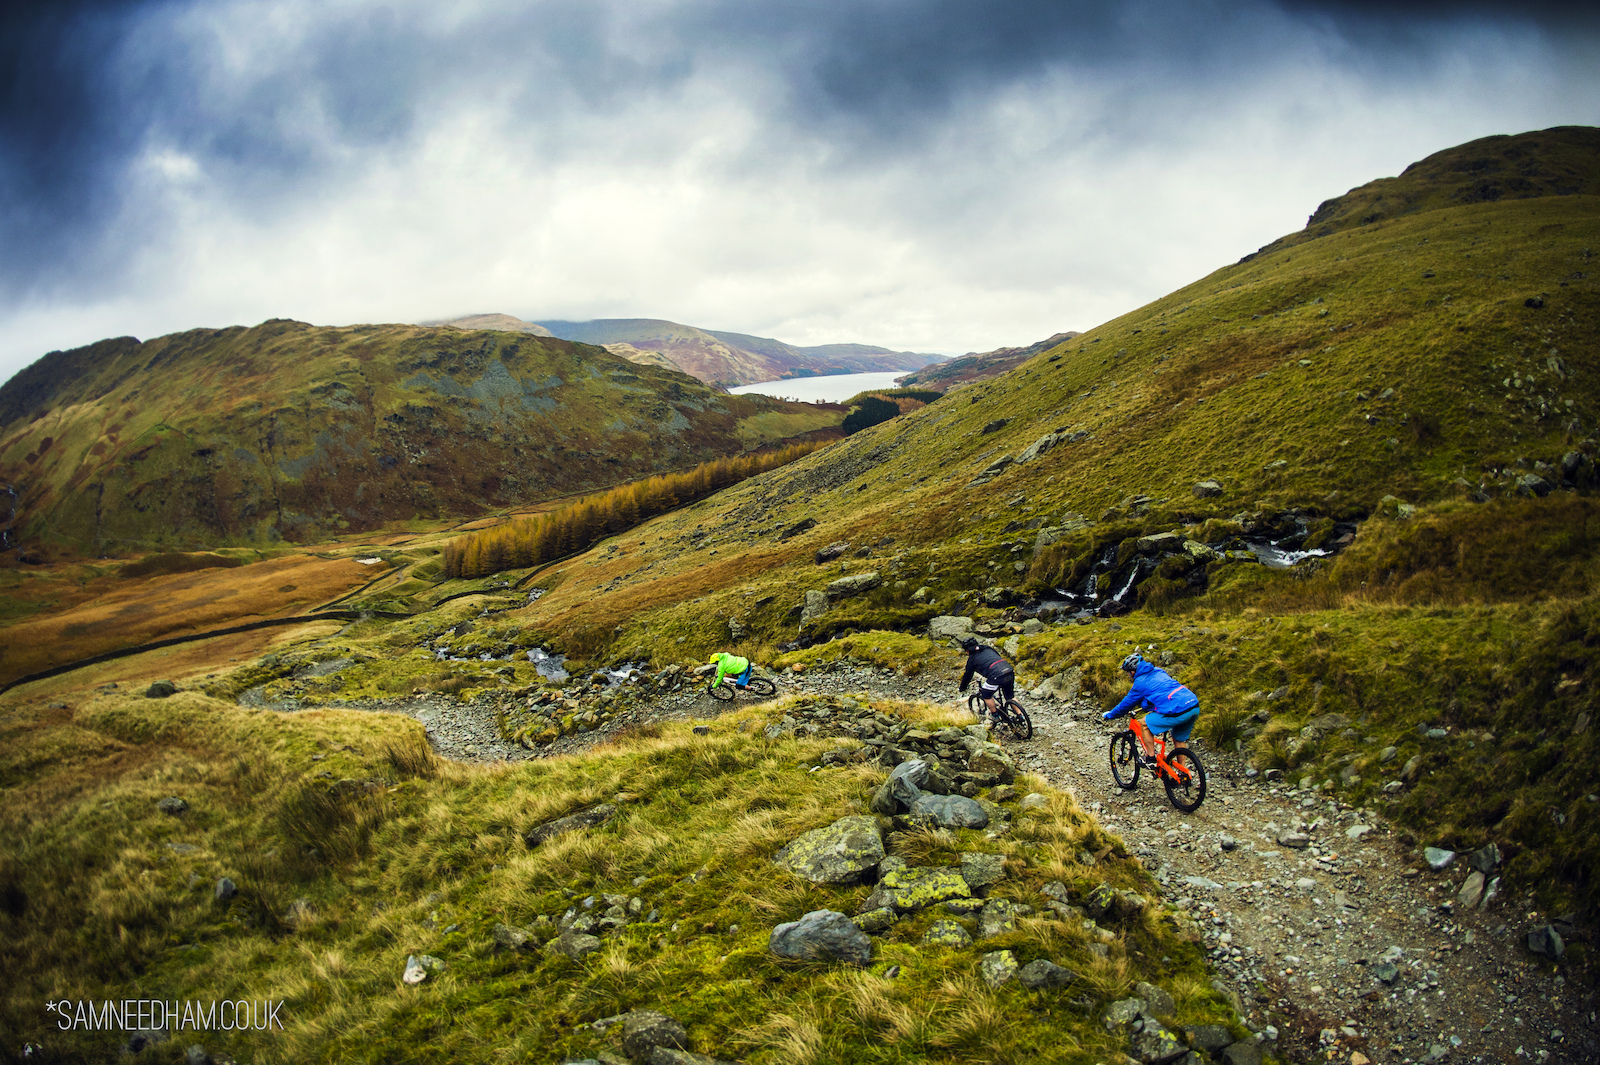 It's doesn't take long for you to realise why the Lake District, UK is one of the best places to ride on earth. Natural descents snake their way along its epic slopes, as mountains and lakes peep into view every corner you turn. This is what mountain biking is about!